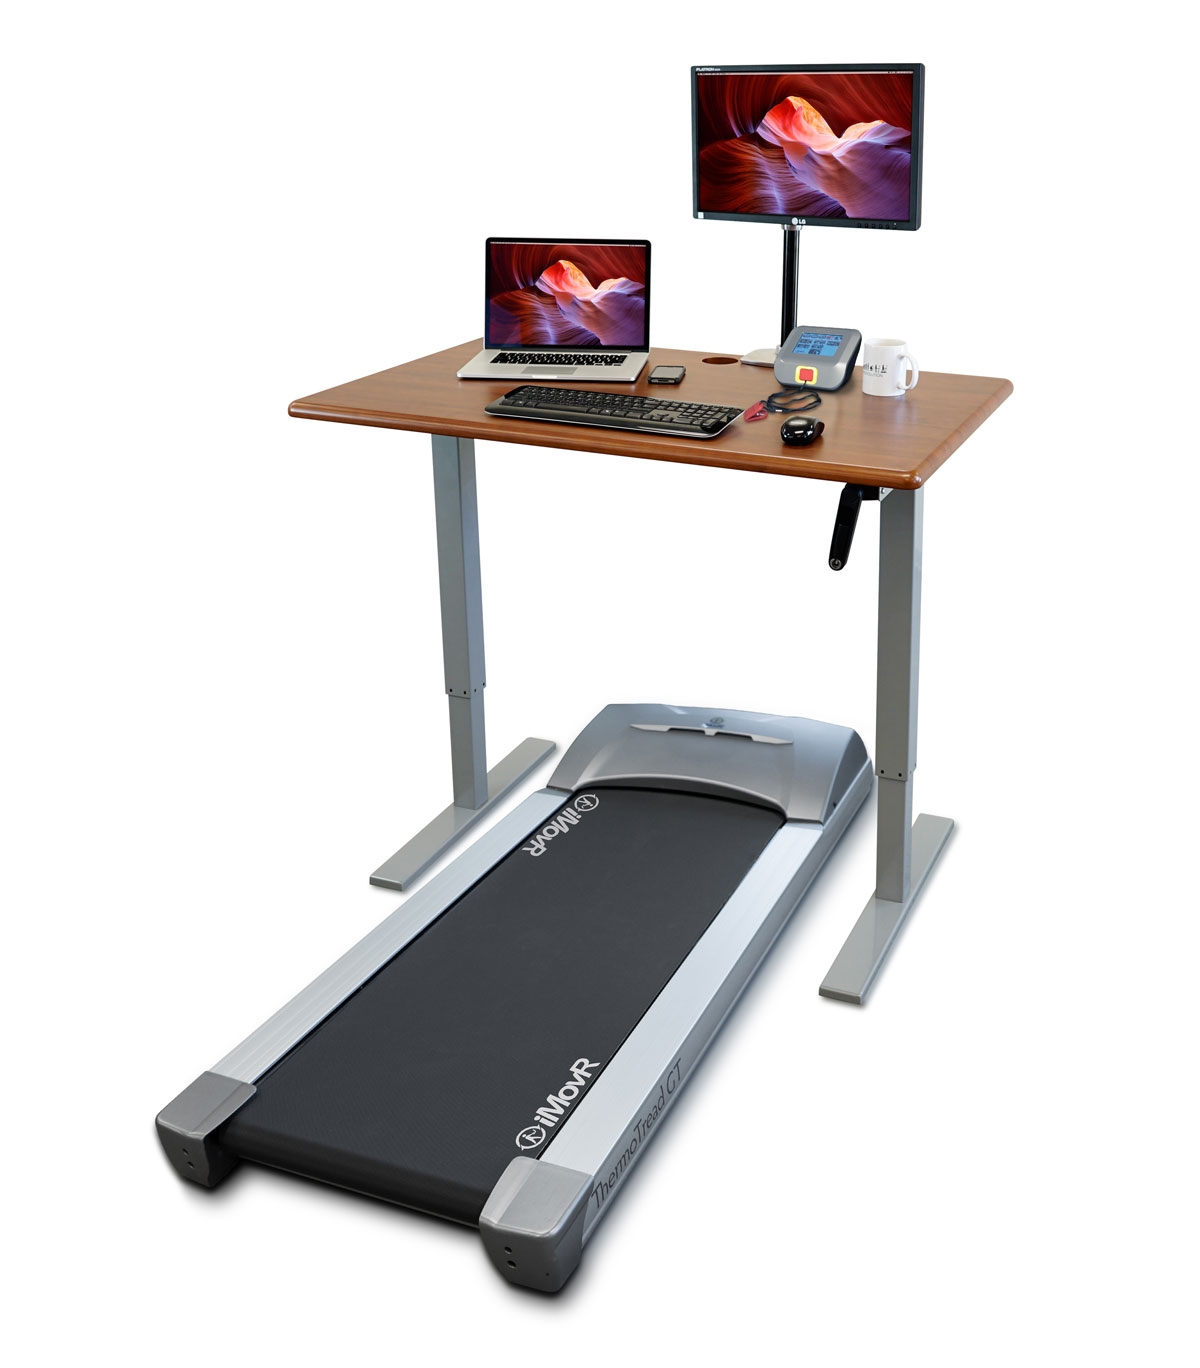 Treadmill For Desk At Work: IMovR ThermoDesk Ellure Treadmill Desk